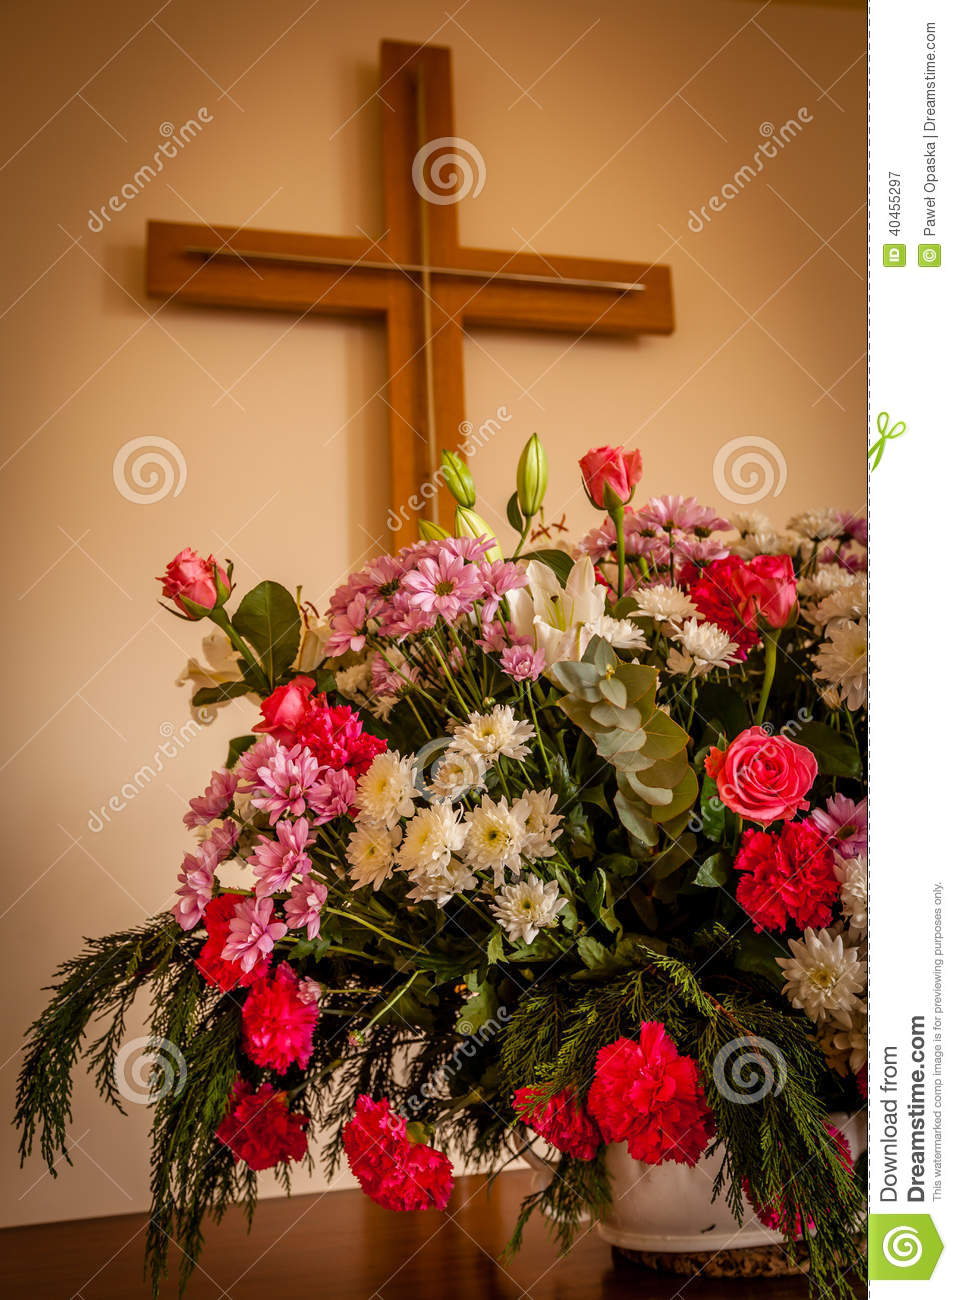 Christian Cross And Flowers On Altar Stock Photo Image